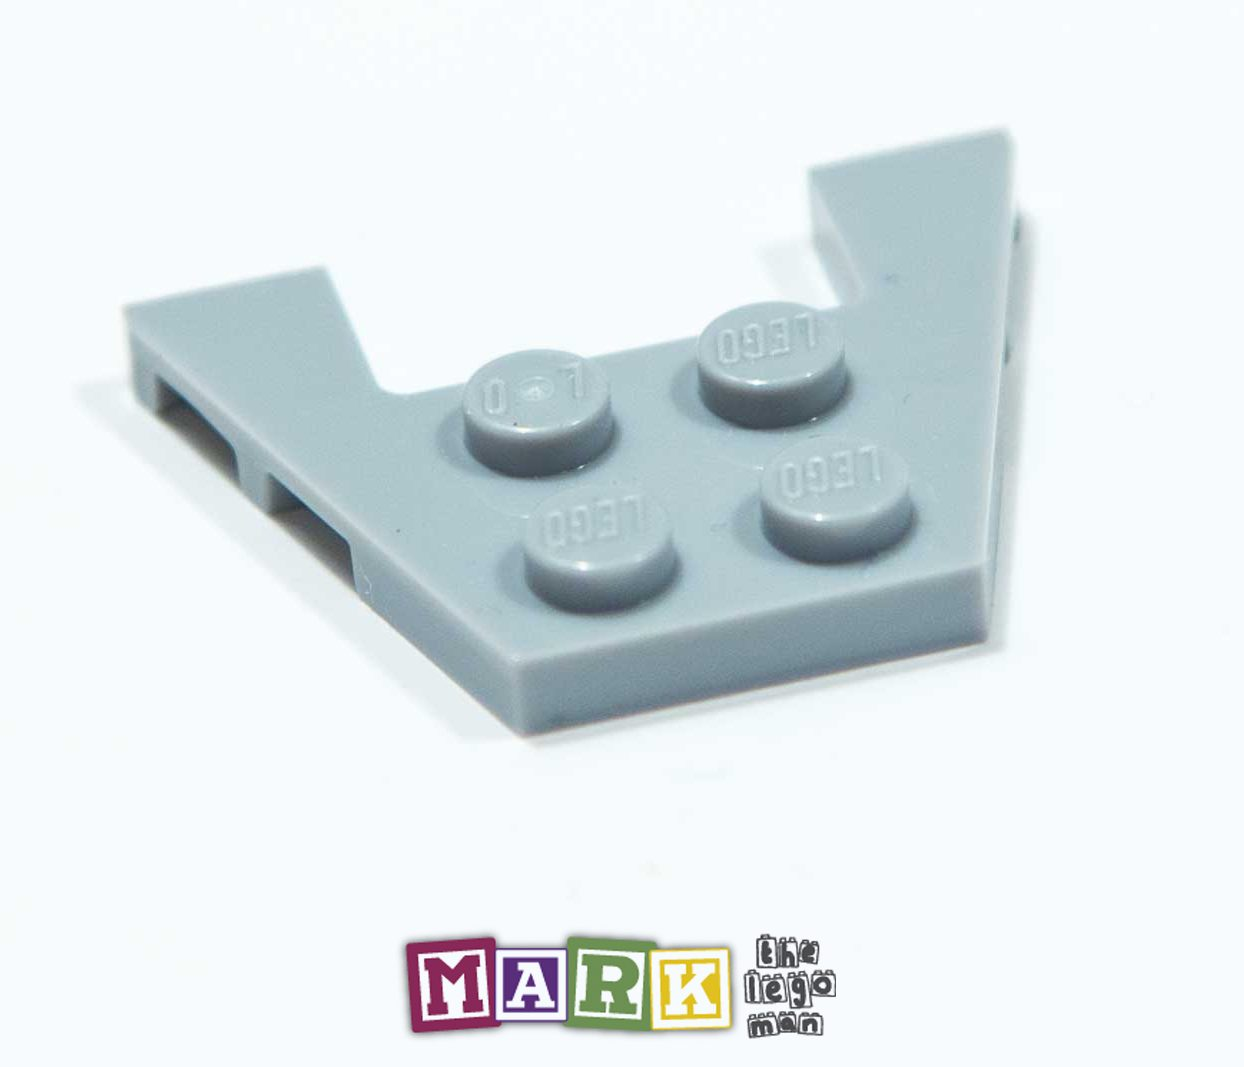 New Lego 90194 3x4 Plate with angles 4594243